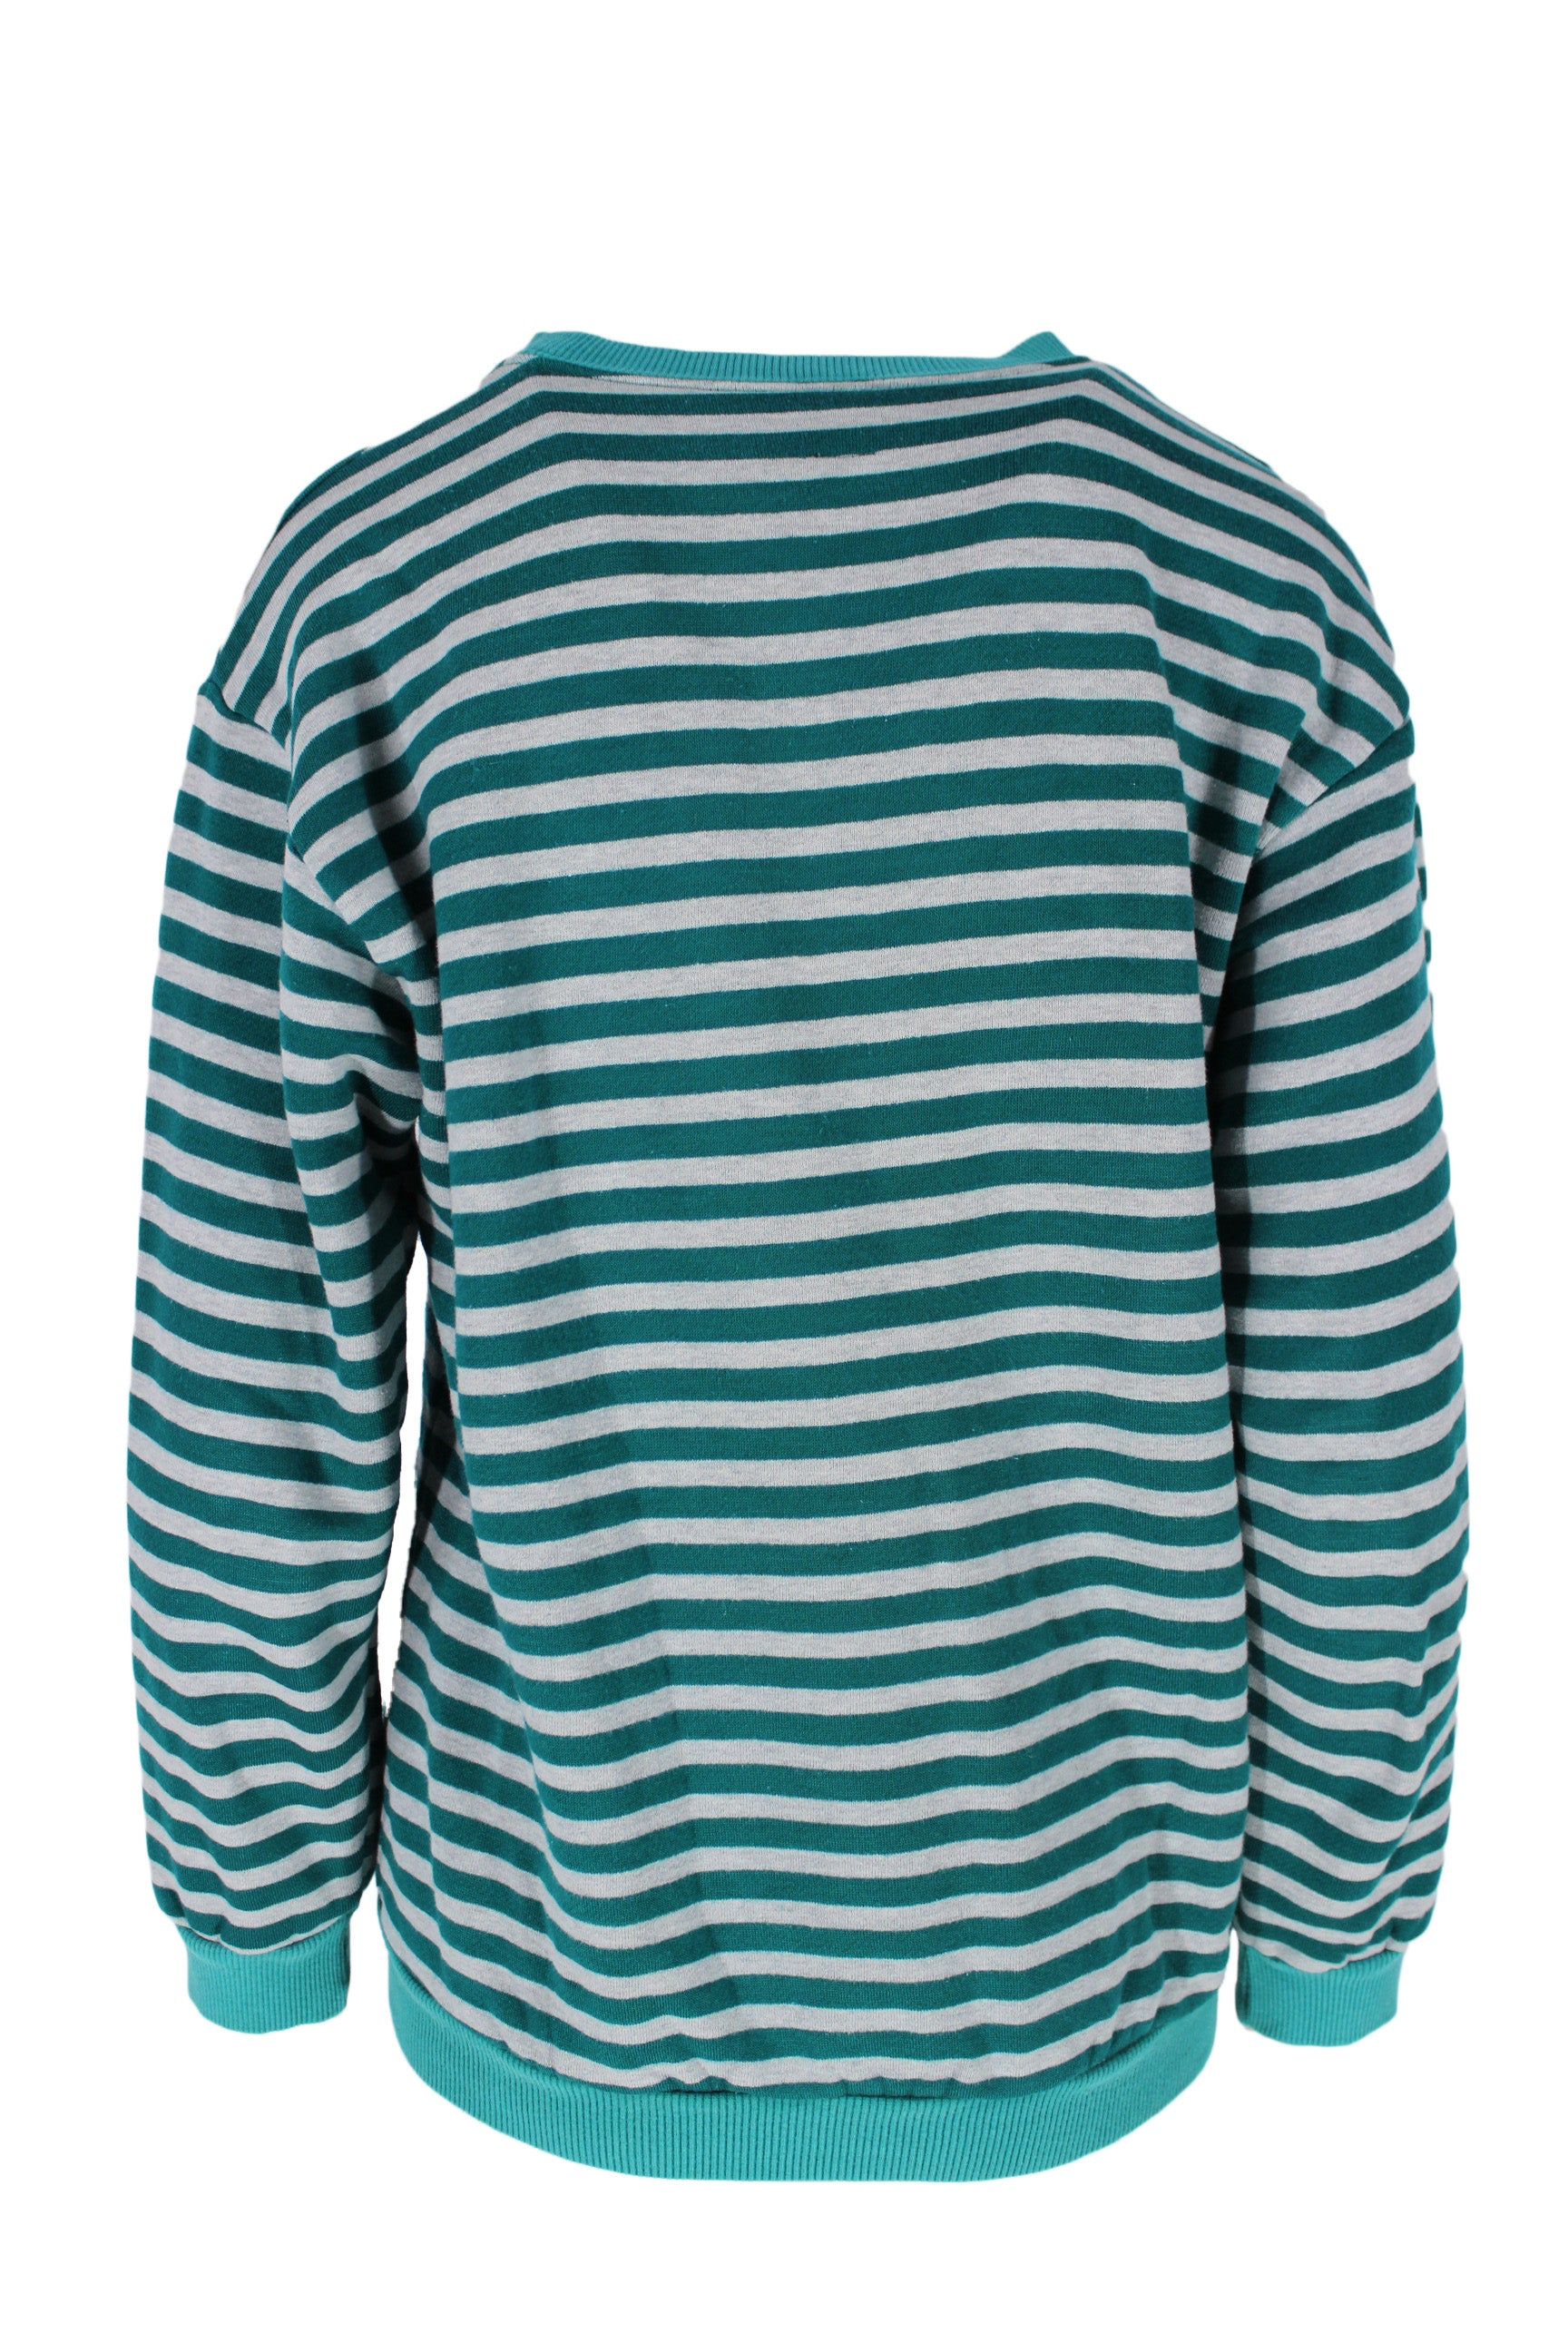 green striped sweatshirt